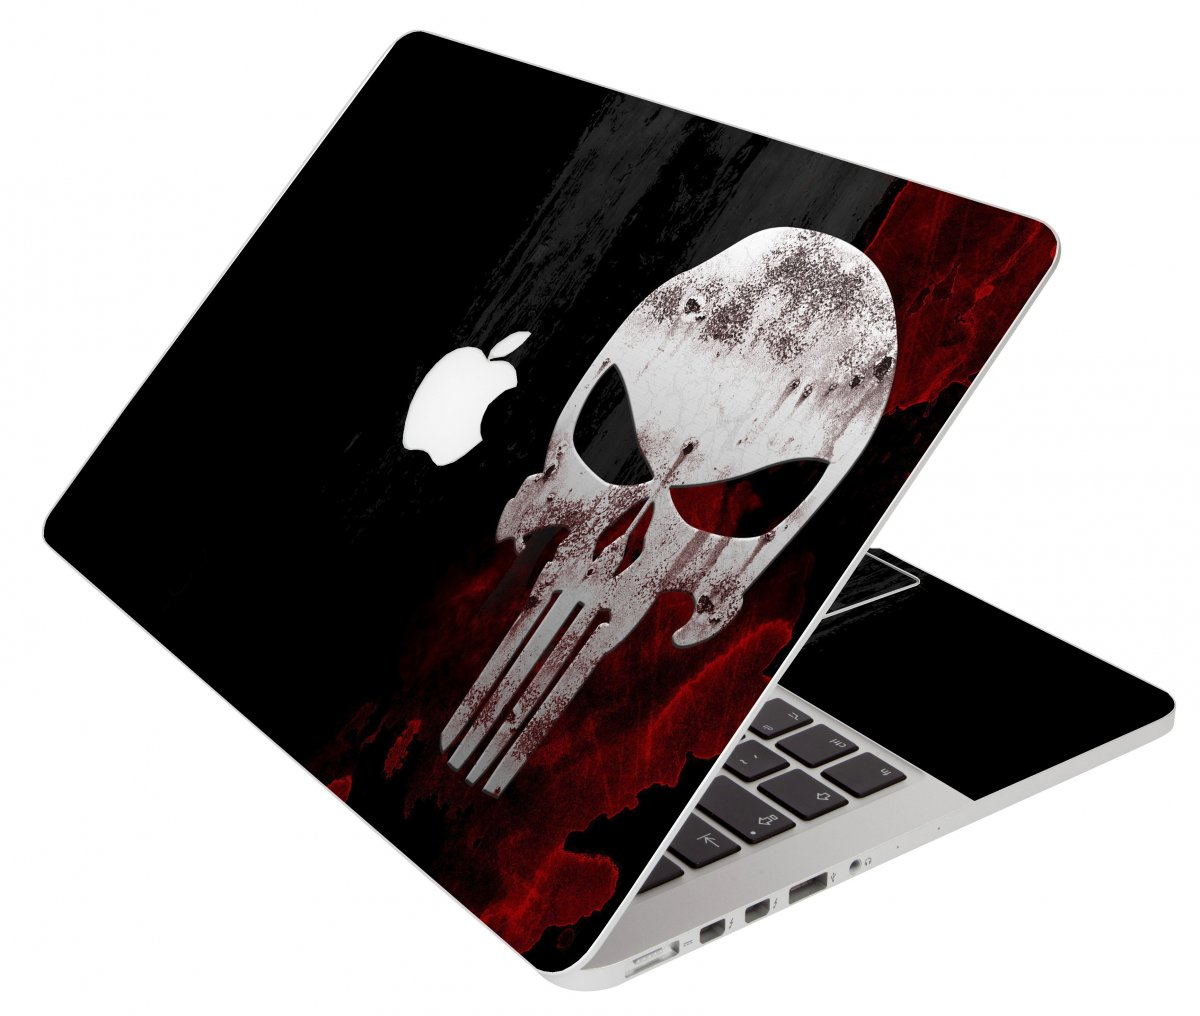 Punisher Skull Apple Macbook Pro 17 A1297 Laptop Skin